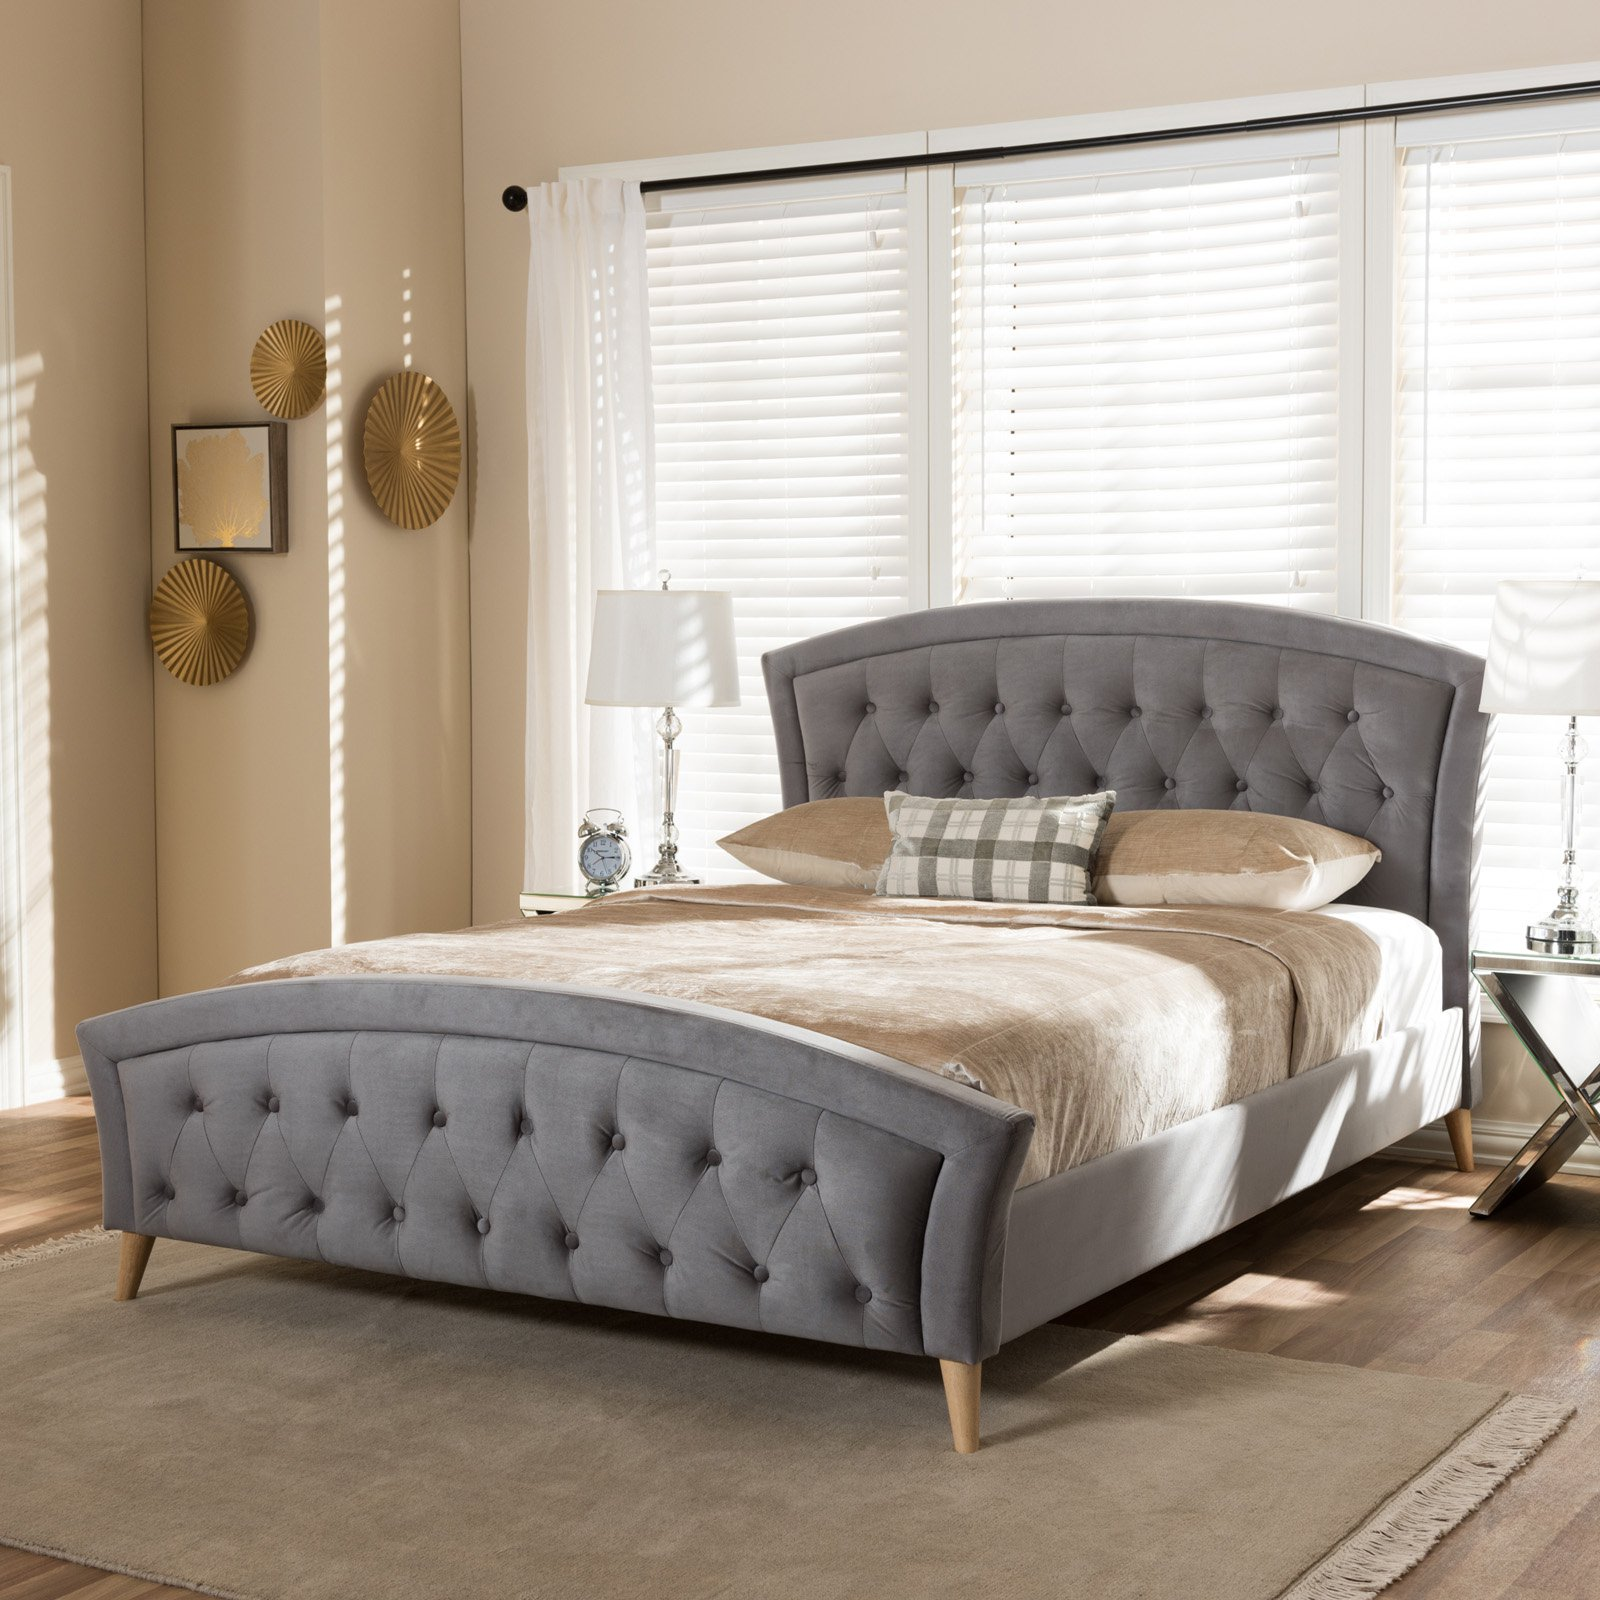 Baxton studio hannah modern and contemporary grey velvet fabric upholstered and natural finishing platform bed, multiple sizes